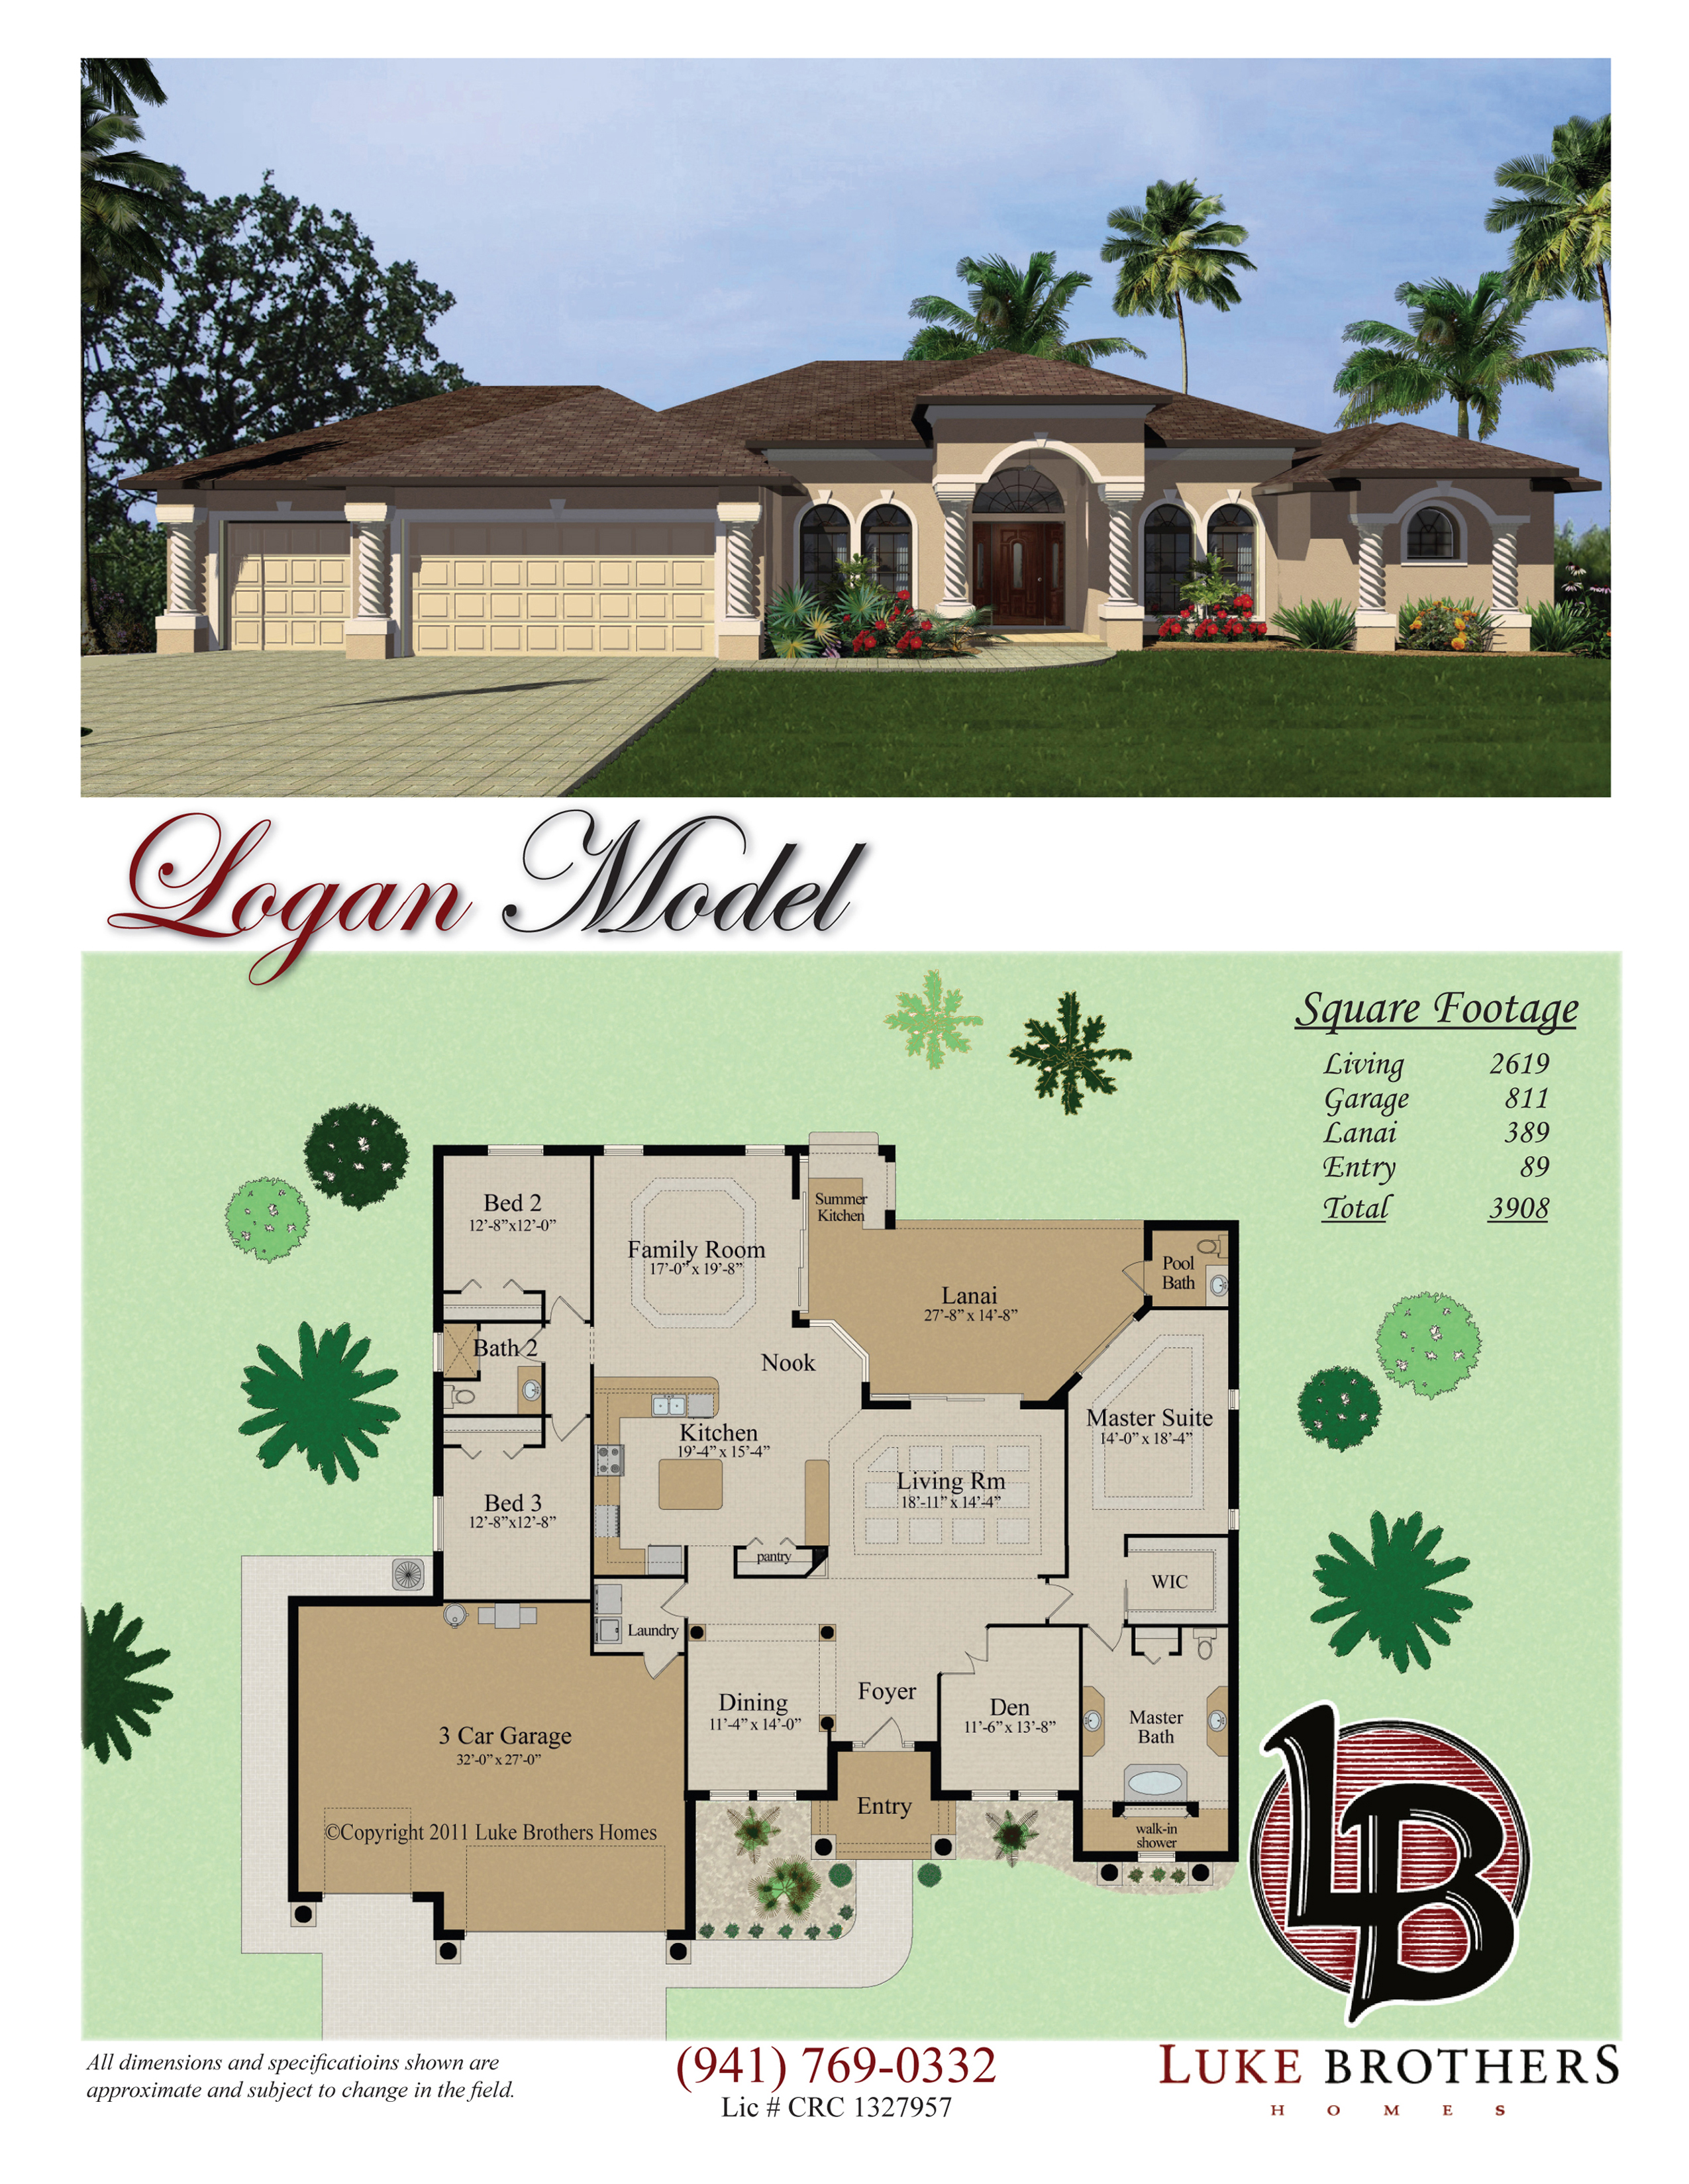 home floor plans color.  Color Floor Plan and Brochure Samples on Behance